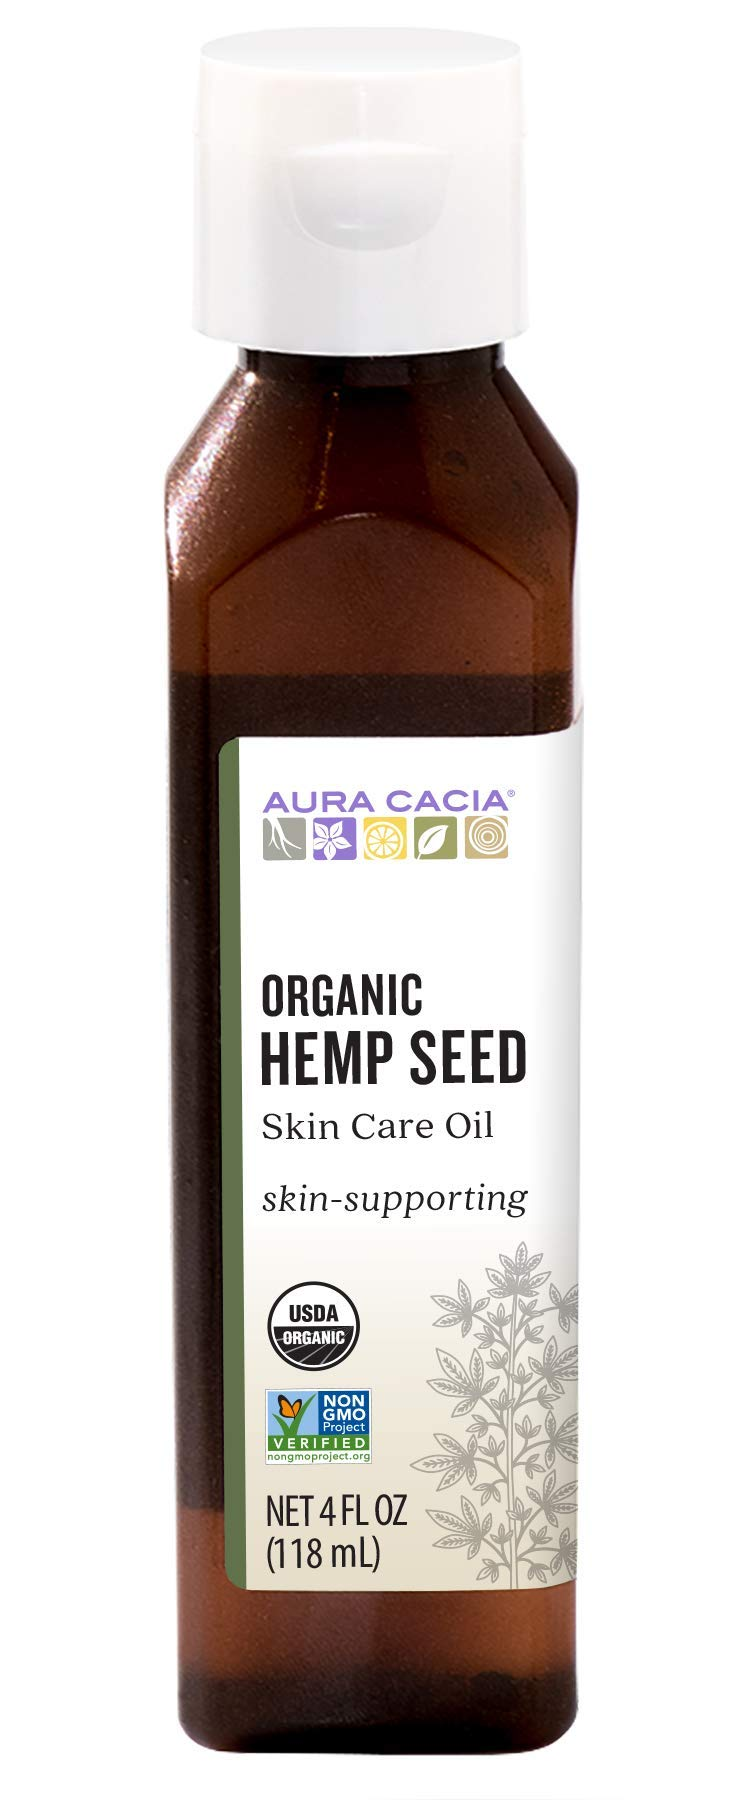 Aura Cacia Organic Hemp Seed Oil | GC/MS Tested for Purity | 118ml (4 fl. oz.)